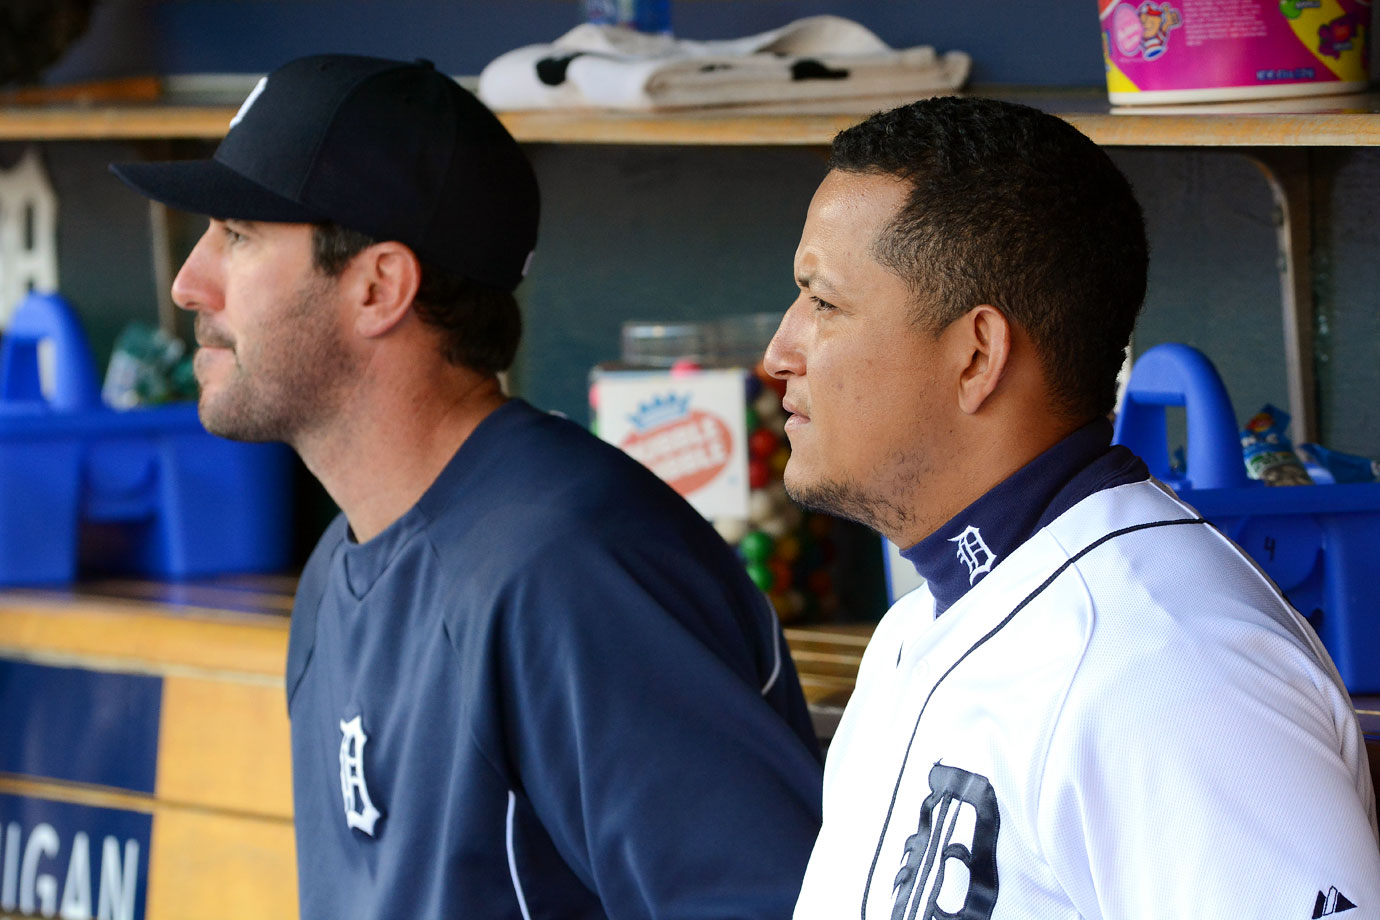 Highest salaries: Justin Verlander ($28,000,000), Miguel Cabrera ($22,000,000), David Price ($19,750,000), Anibal Sanchez ($16,800,000), Ian Kinsler ($16,000,000)